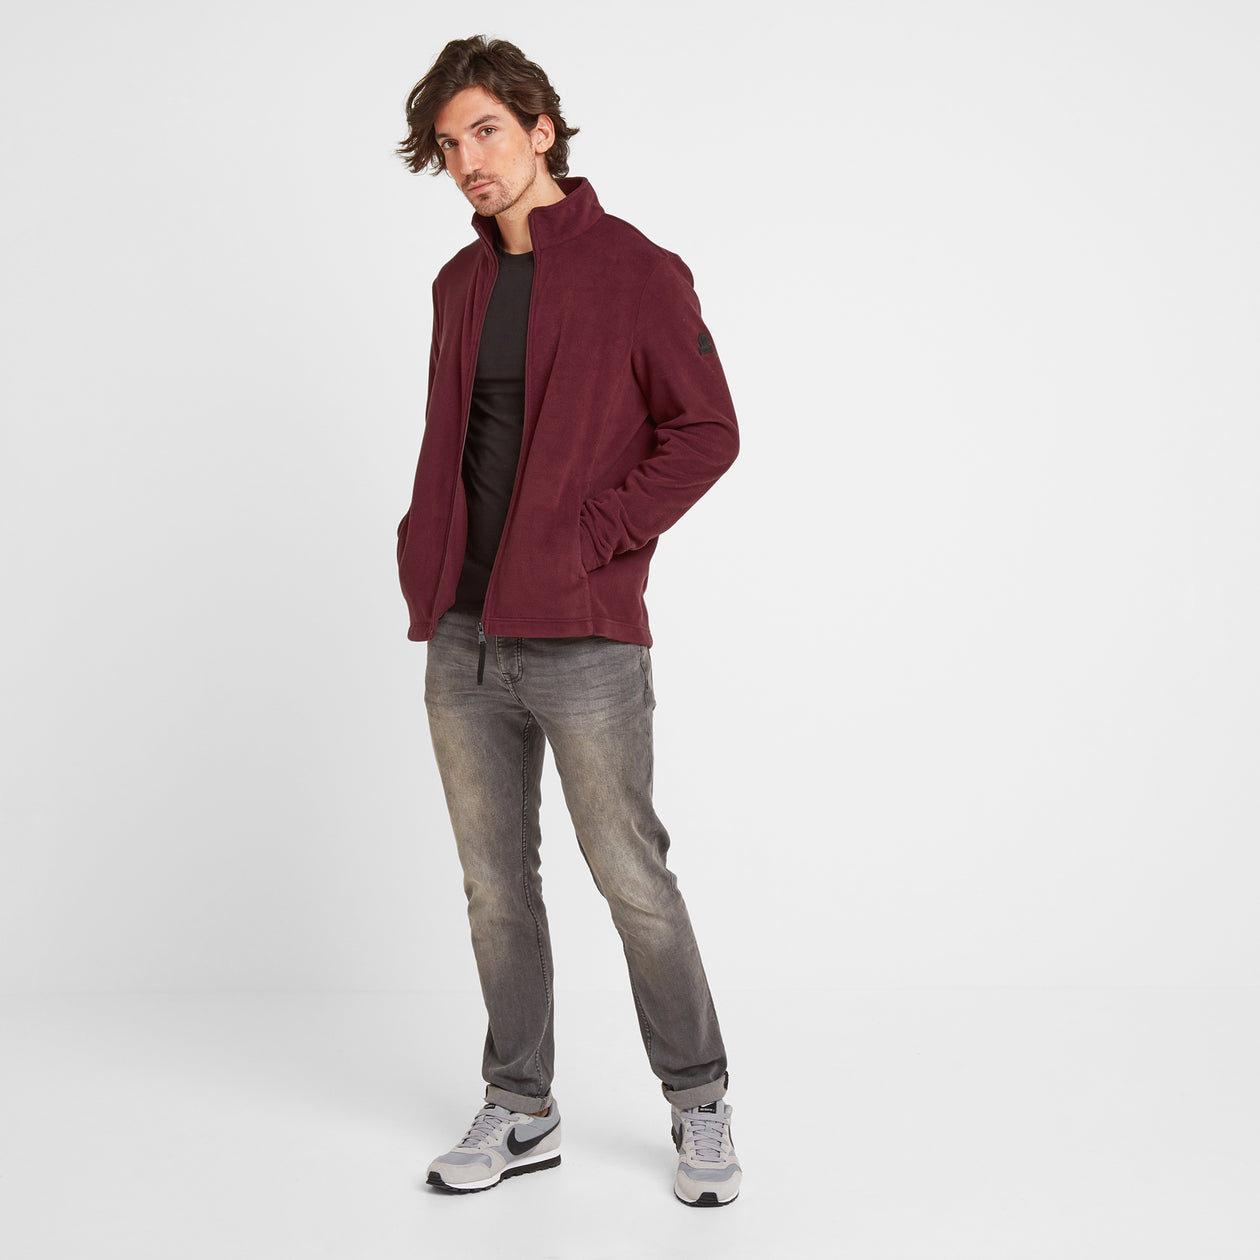 Shire Mens Fleece Jacket - Maroon image 4